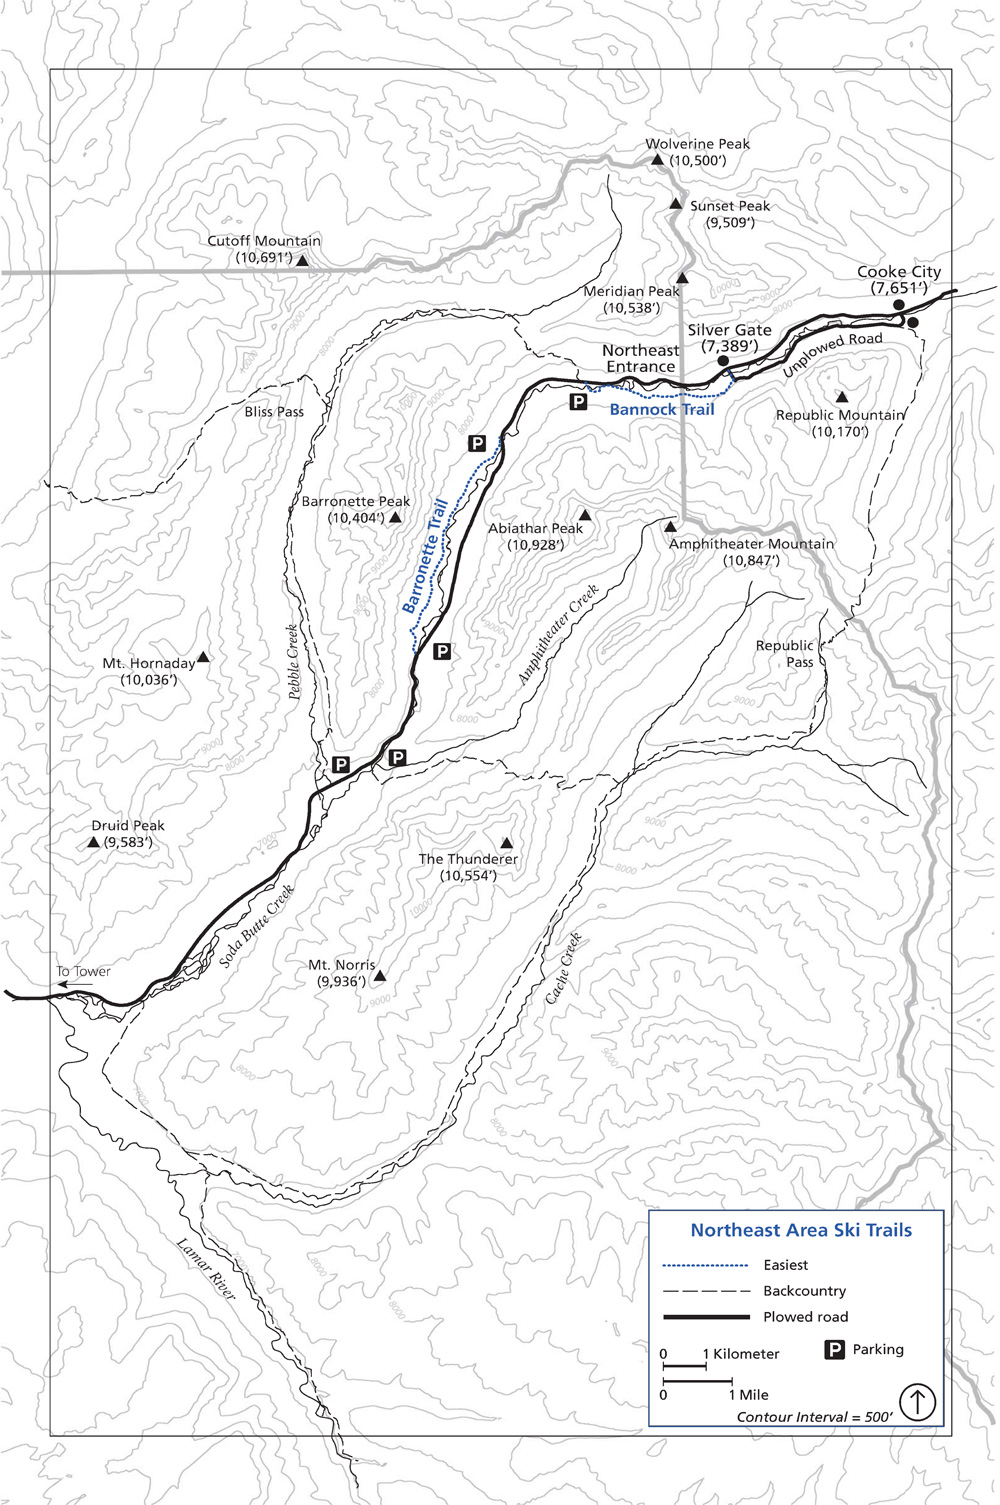 Northeast Ski Trails | Yellowstone National Park Lodges on bear lodge map, slough creek yellowstone map, thorofare wilderness map,